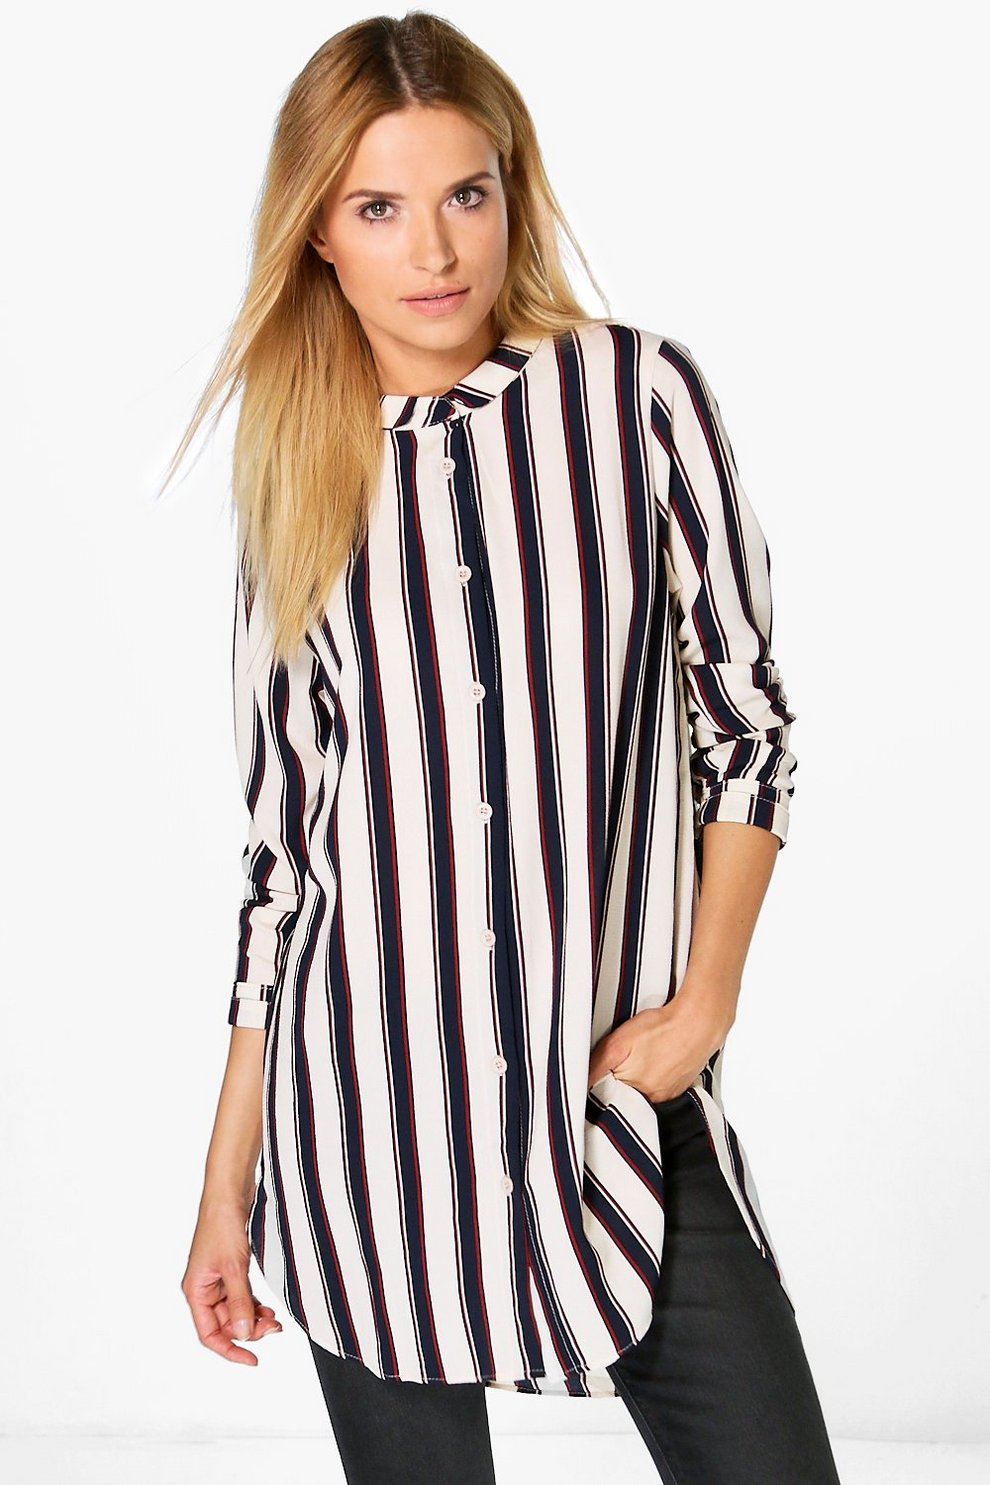 Longline Striped Shirt - Multi Selected Choice Buy Cheap Fashionable Buy Cheap Genuine Outlet Pictures 6TAFu5I